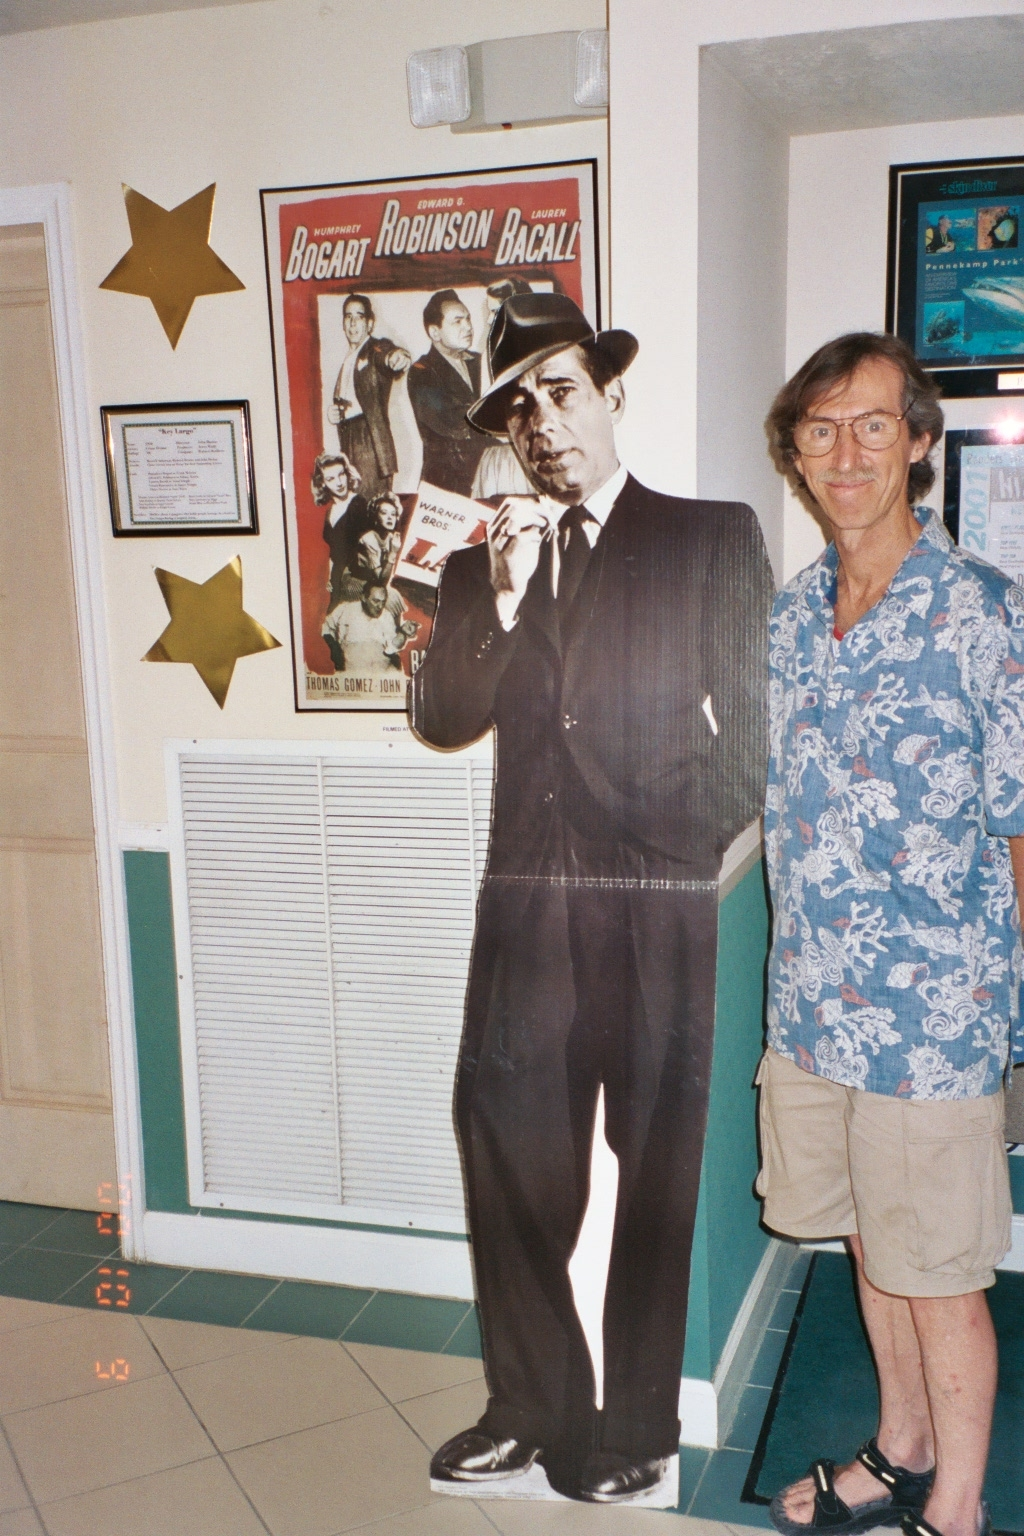 Me and Bogie at Key Largo